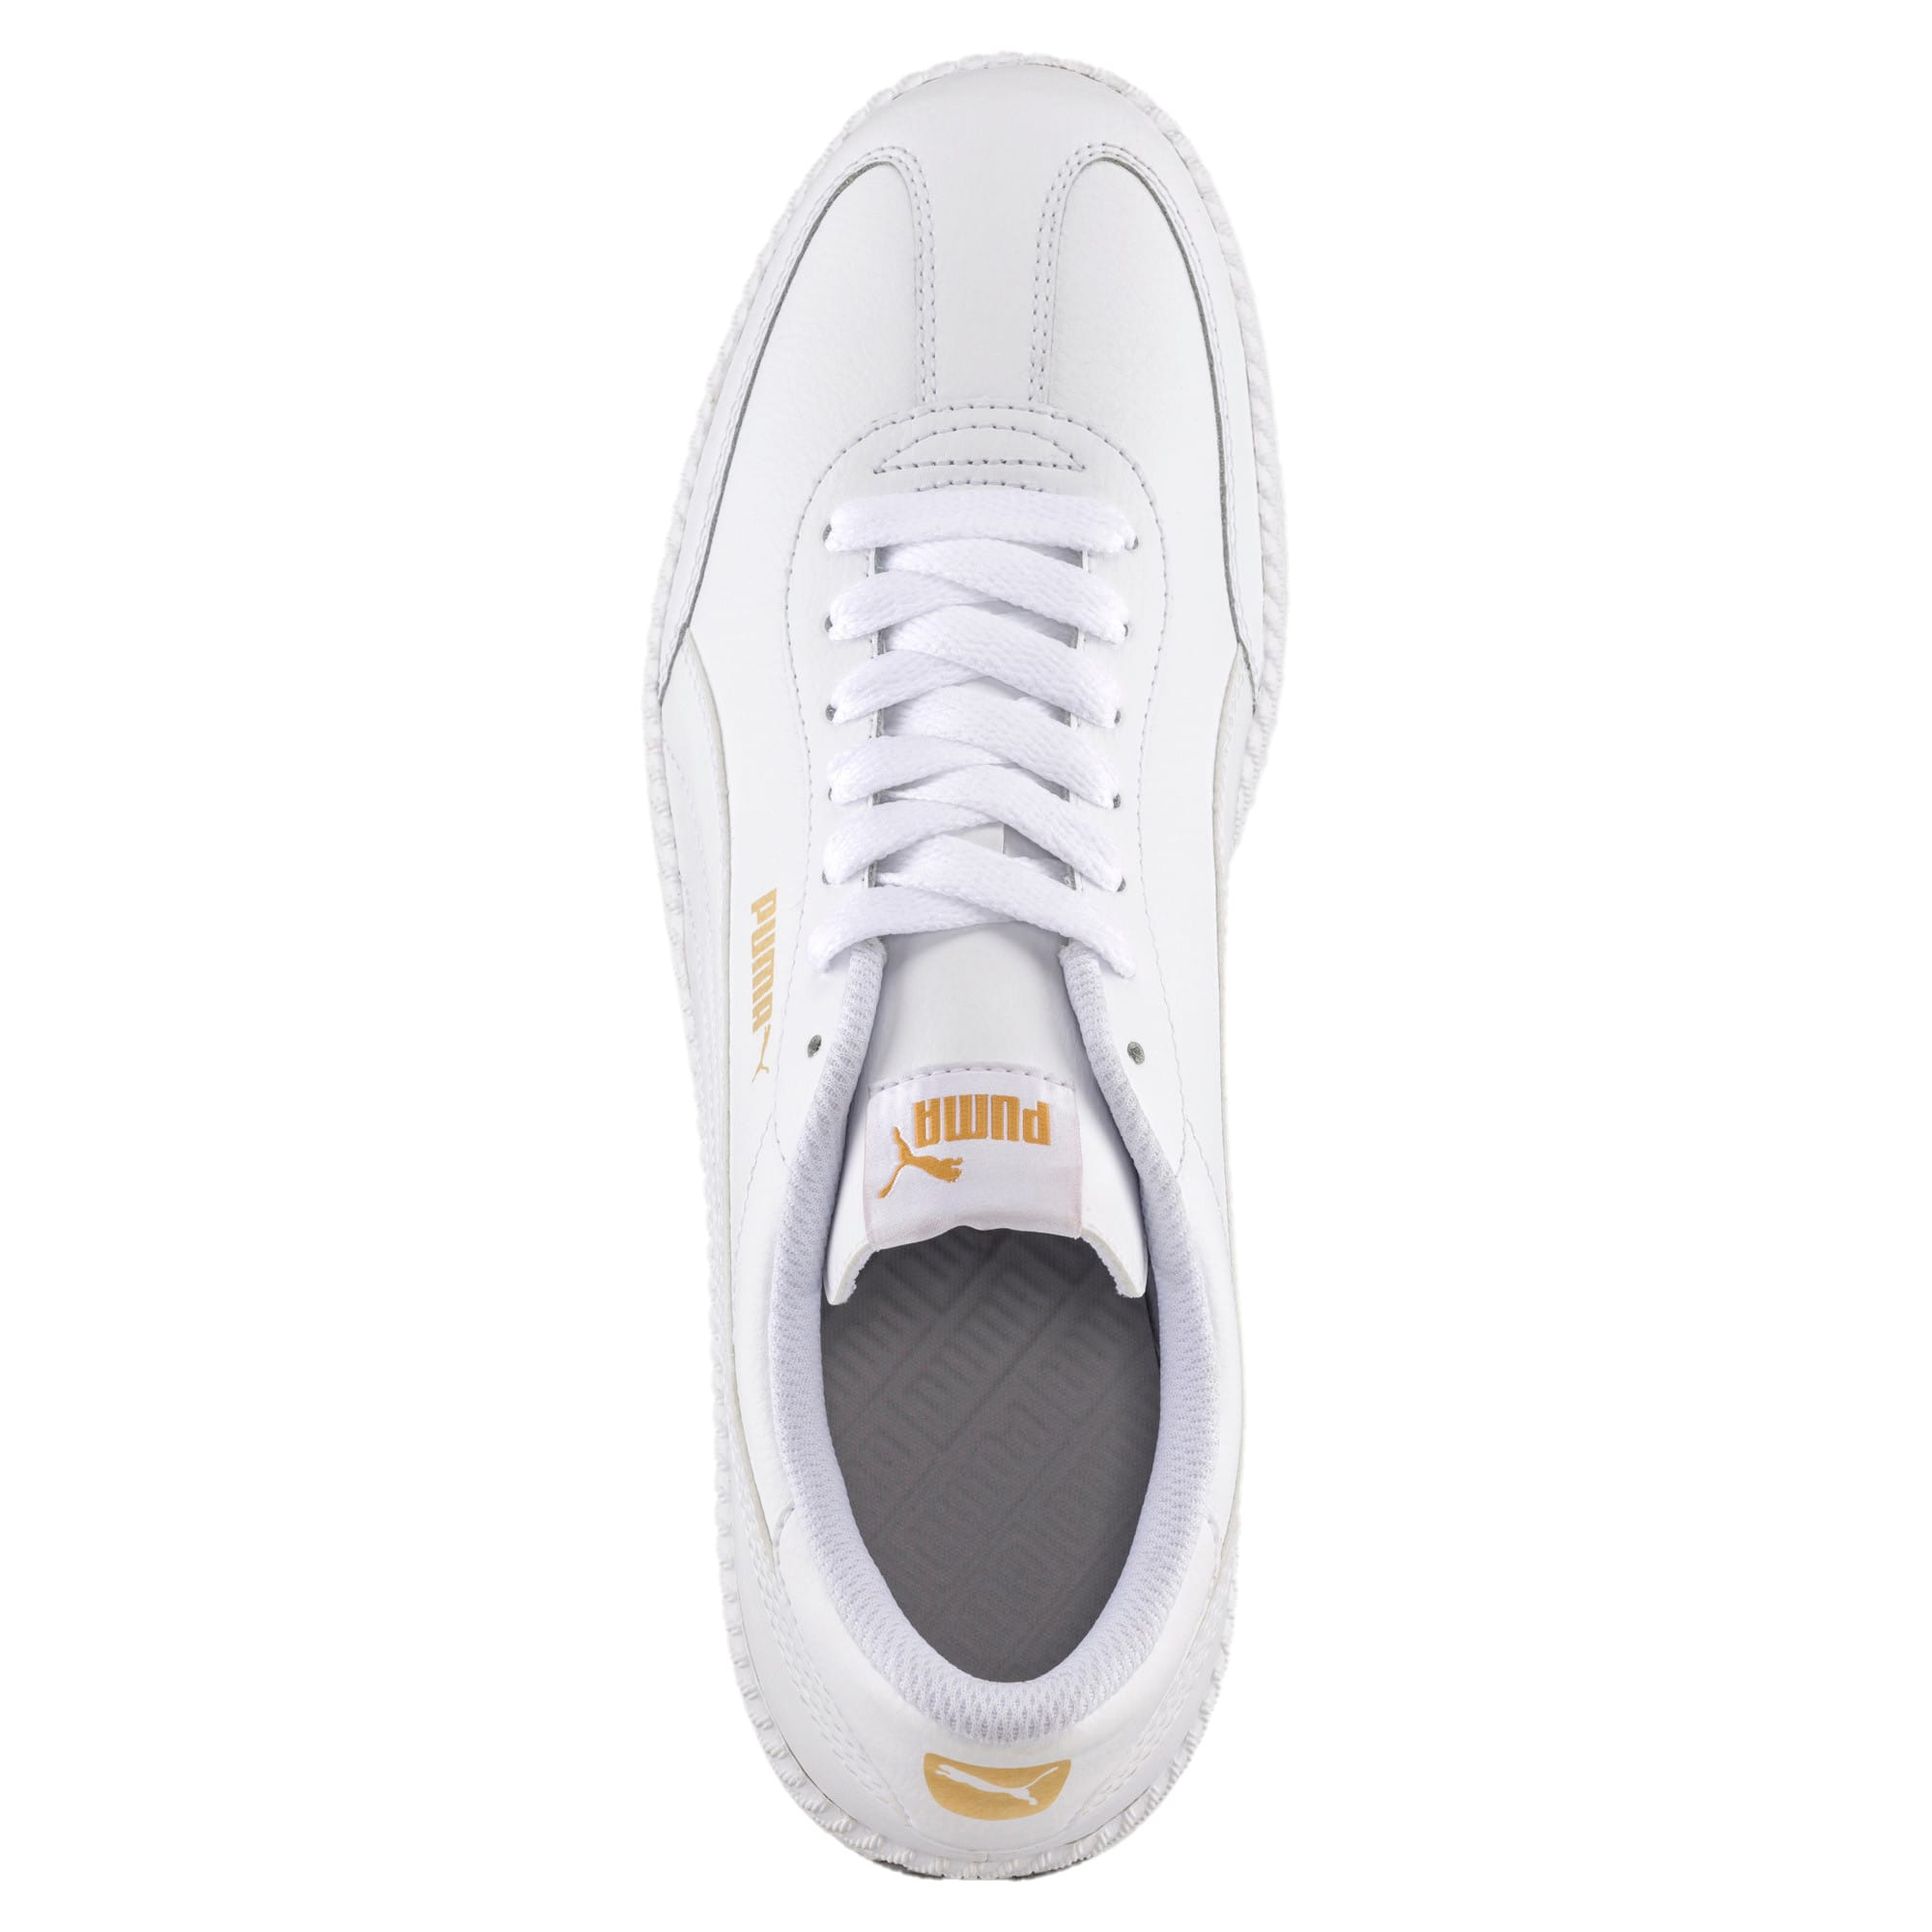 Thumbnail 5 of Astro Cup Leather Trainers, Puma White-Puma White, medium-IND